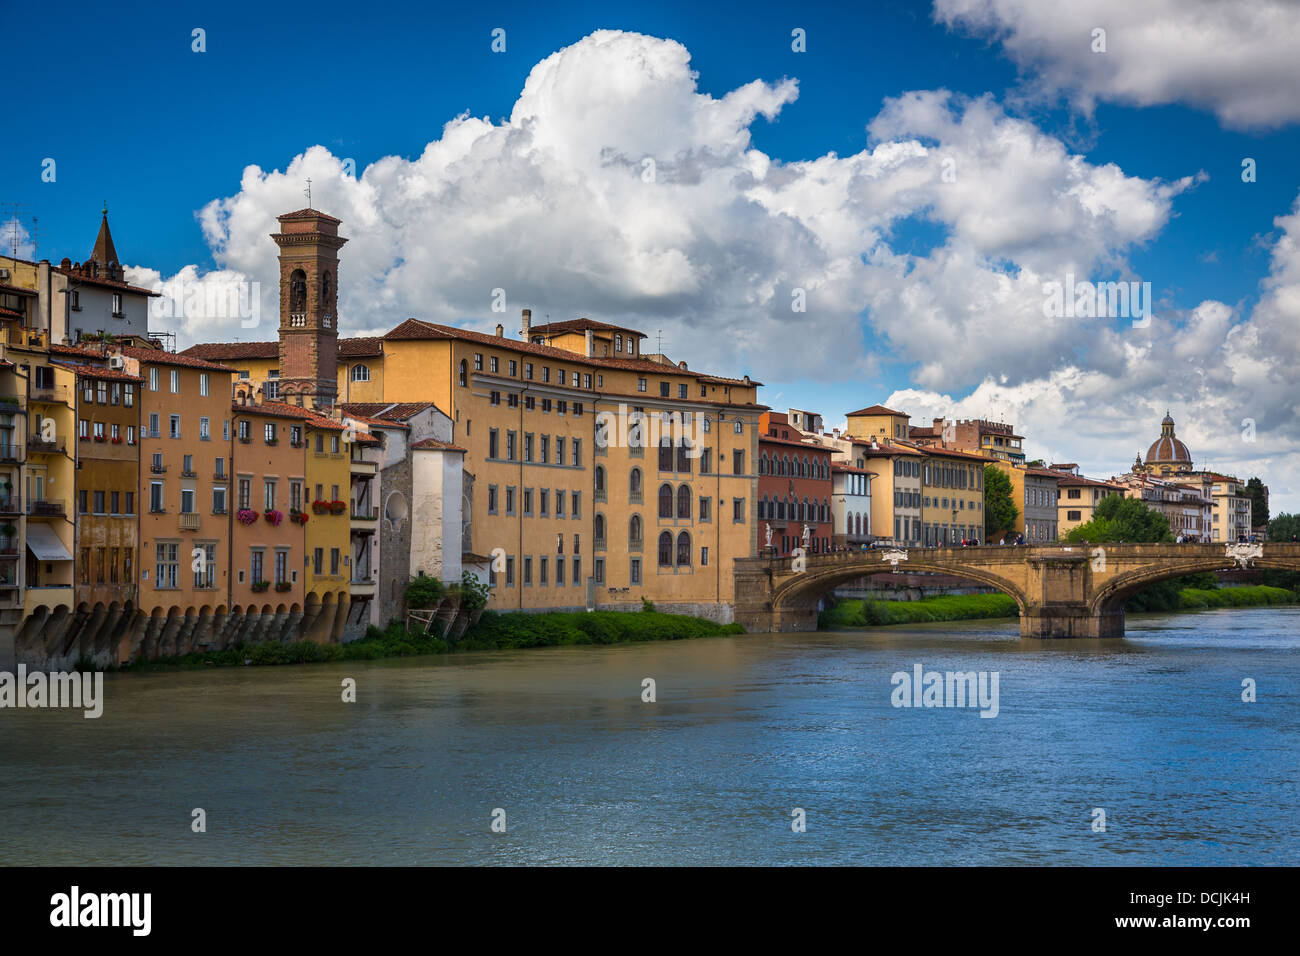 Buildings along the Arno river near Ponte Vecchio in Florence, Italy - Stock Image